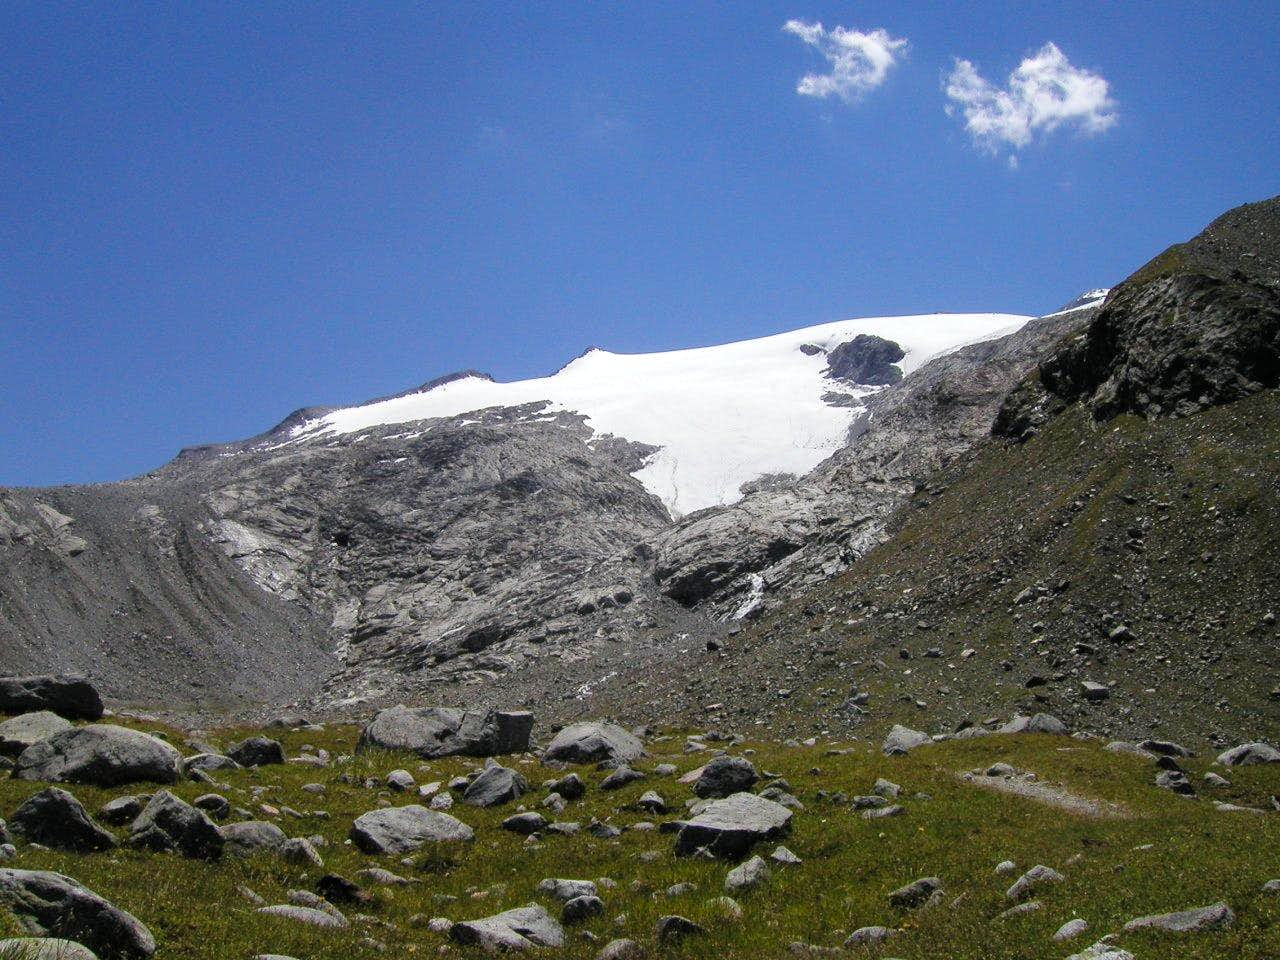 North approach over Westlicher Reiserferner glacier